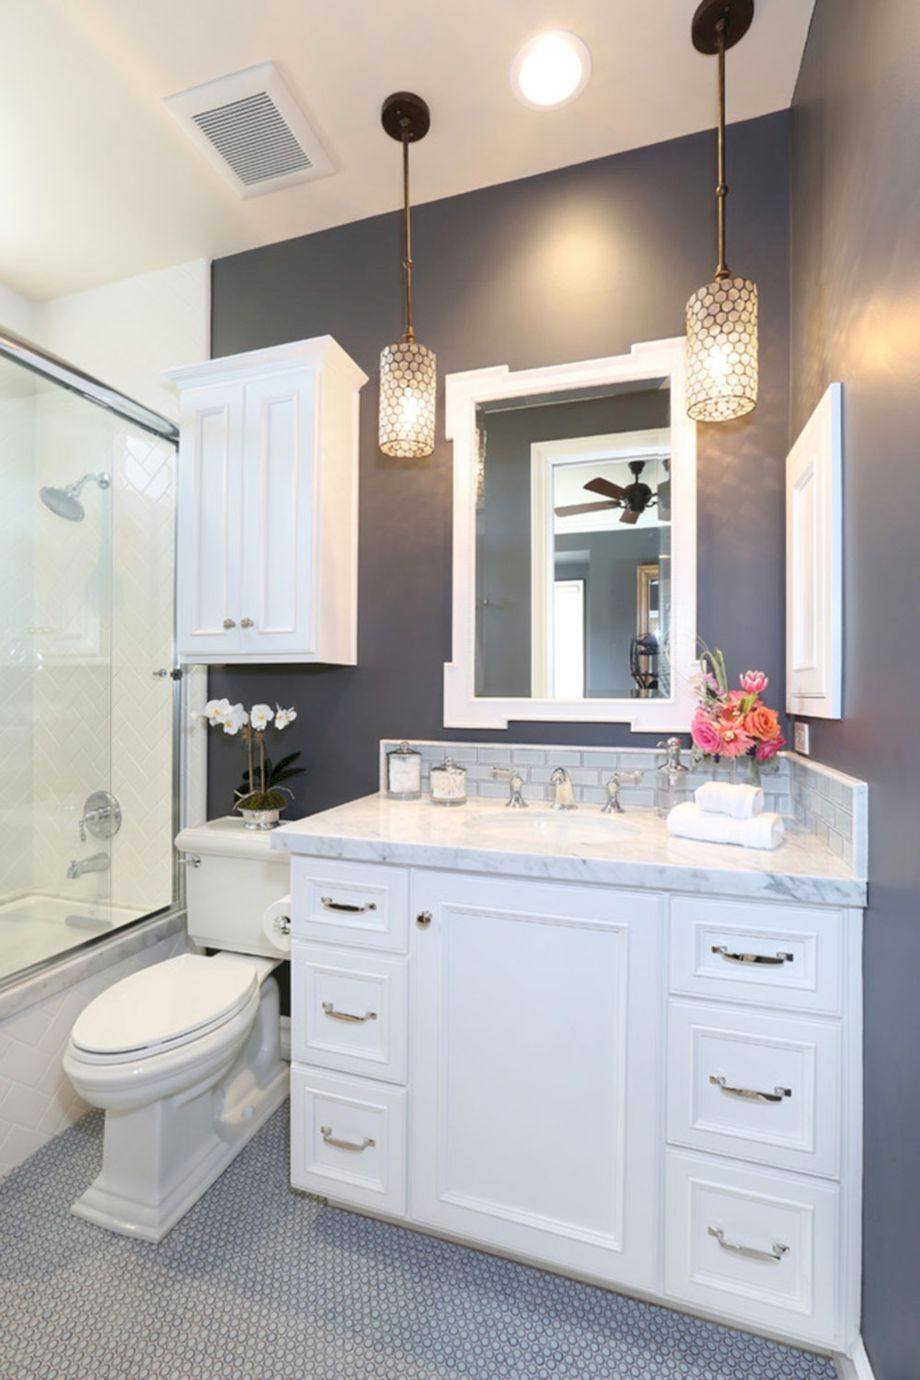 Cool 72 Lovely Small Master Bathroom Remodel On A Budget Https://homedecort. Part 48